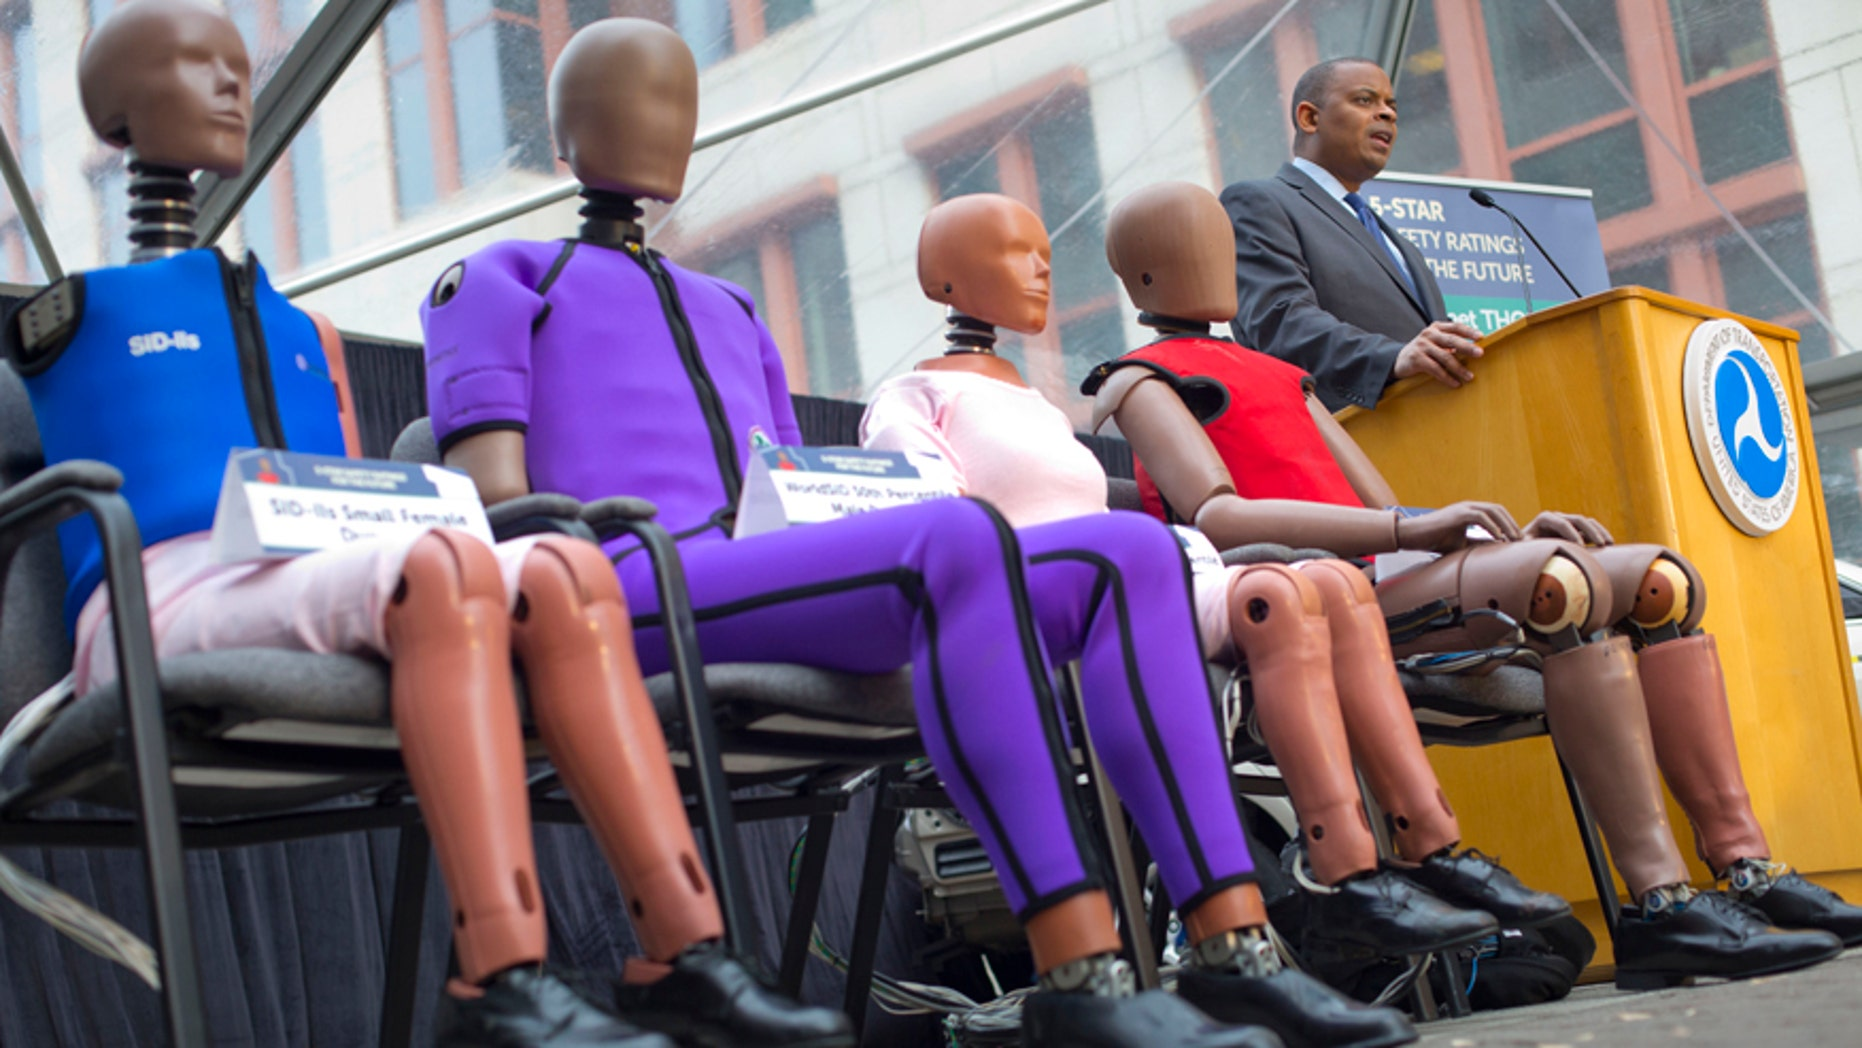 Transportation Secretary Anthony Foxx, with new crash test dummies called 'THOR', during the announcement for plans to update its safety rating system for new cars to include whether the car has technology to avoid crashes, in addition to how well it protects occupants in accidents in Washington, Tuesday, Dec. 8, 2015. In addition, the crash tests will be improved to include accidents in which cars collide at an angle, and they will use improved crash-test dummies that better represent how accidents impact the human body. And the rating system will reward cars designed to protect pedestrians who are struck by them.(AP Photo/Pablo Martinez Monsivais)